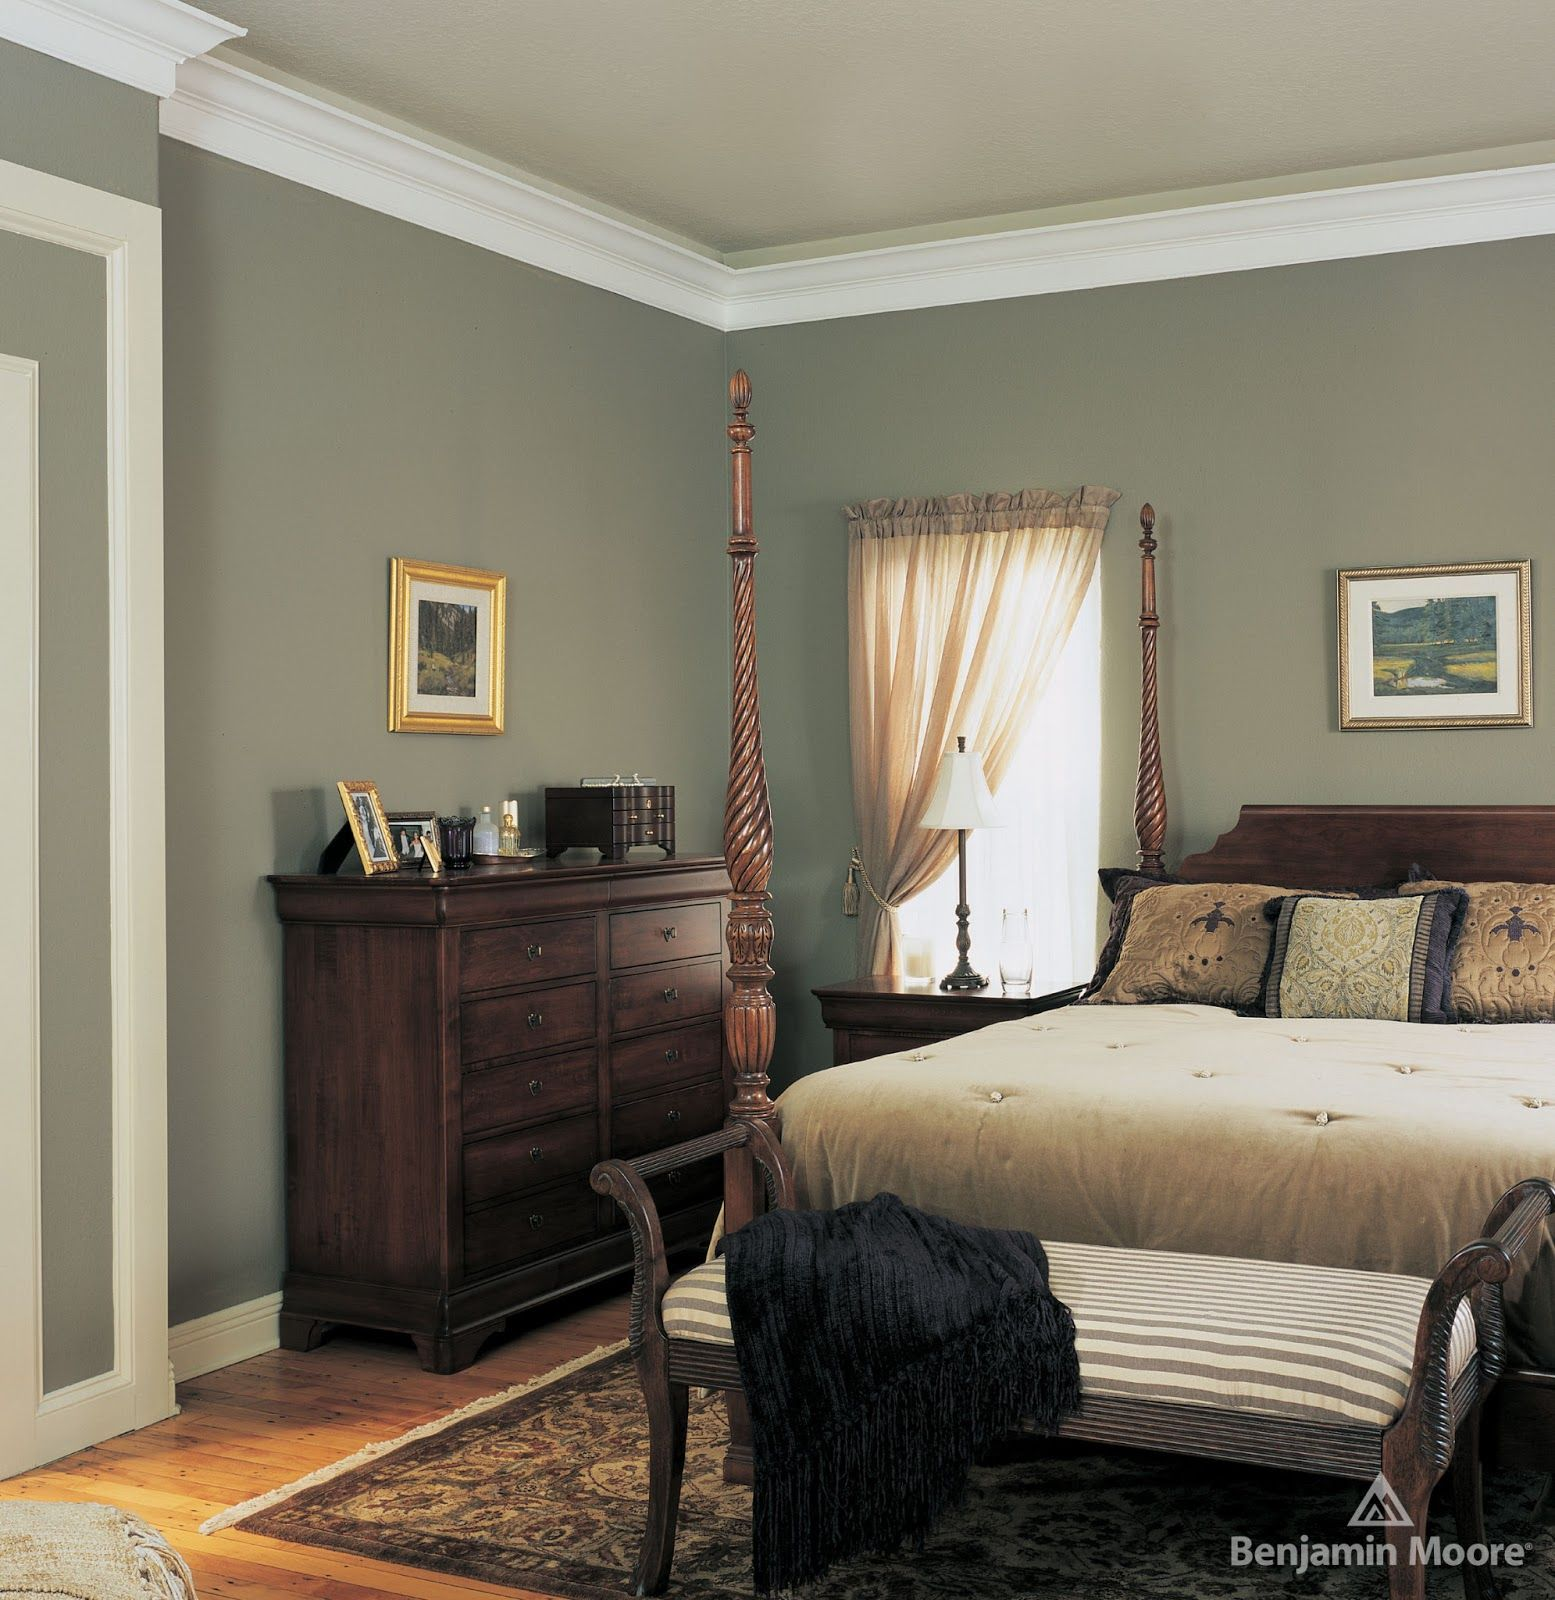 factory paint decorating benjamin moore regal select interior factory paint decorating benjamin moore regal select interior paint heather gray walls